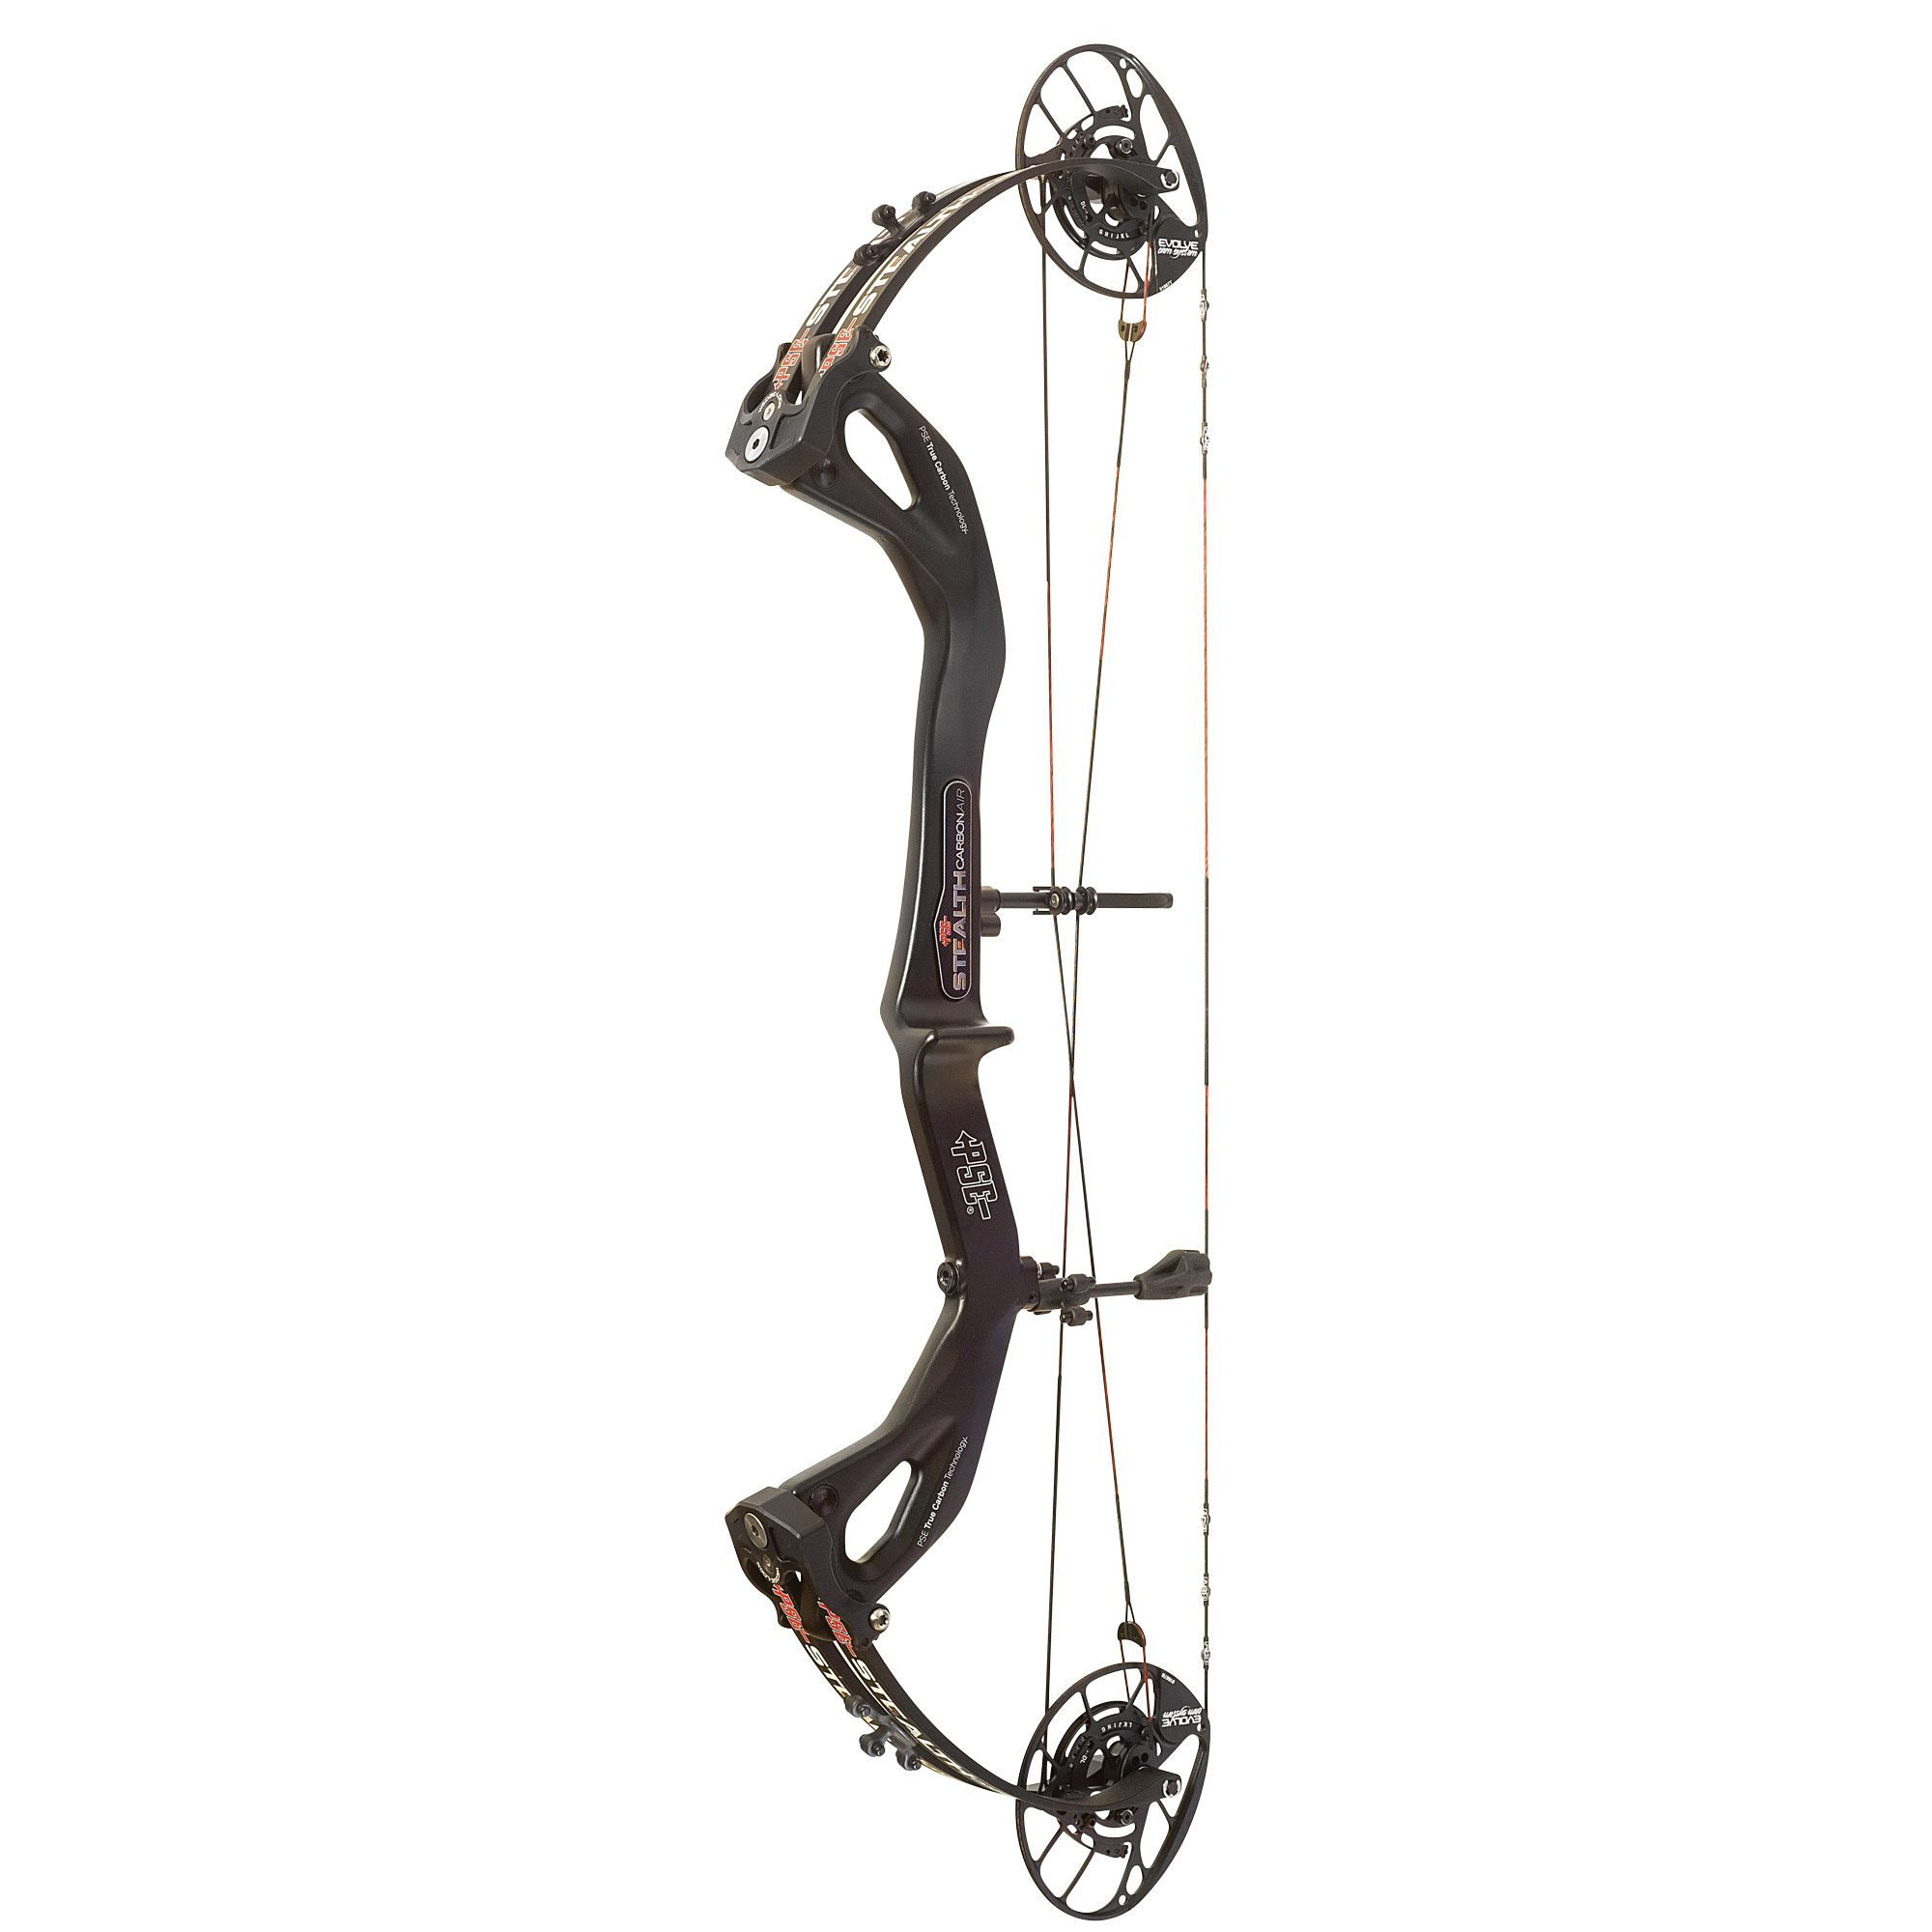 2020 PSE Carbon Air Stealth EC in Black